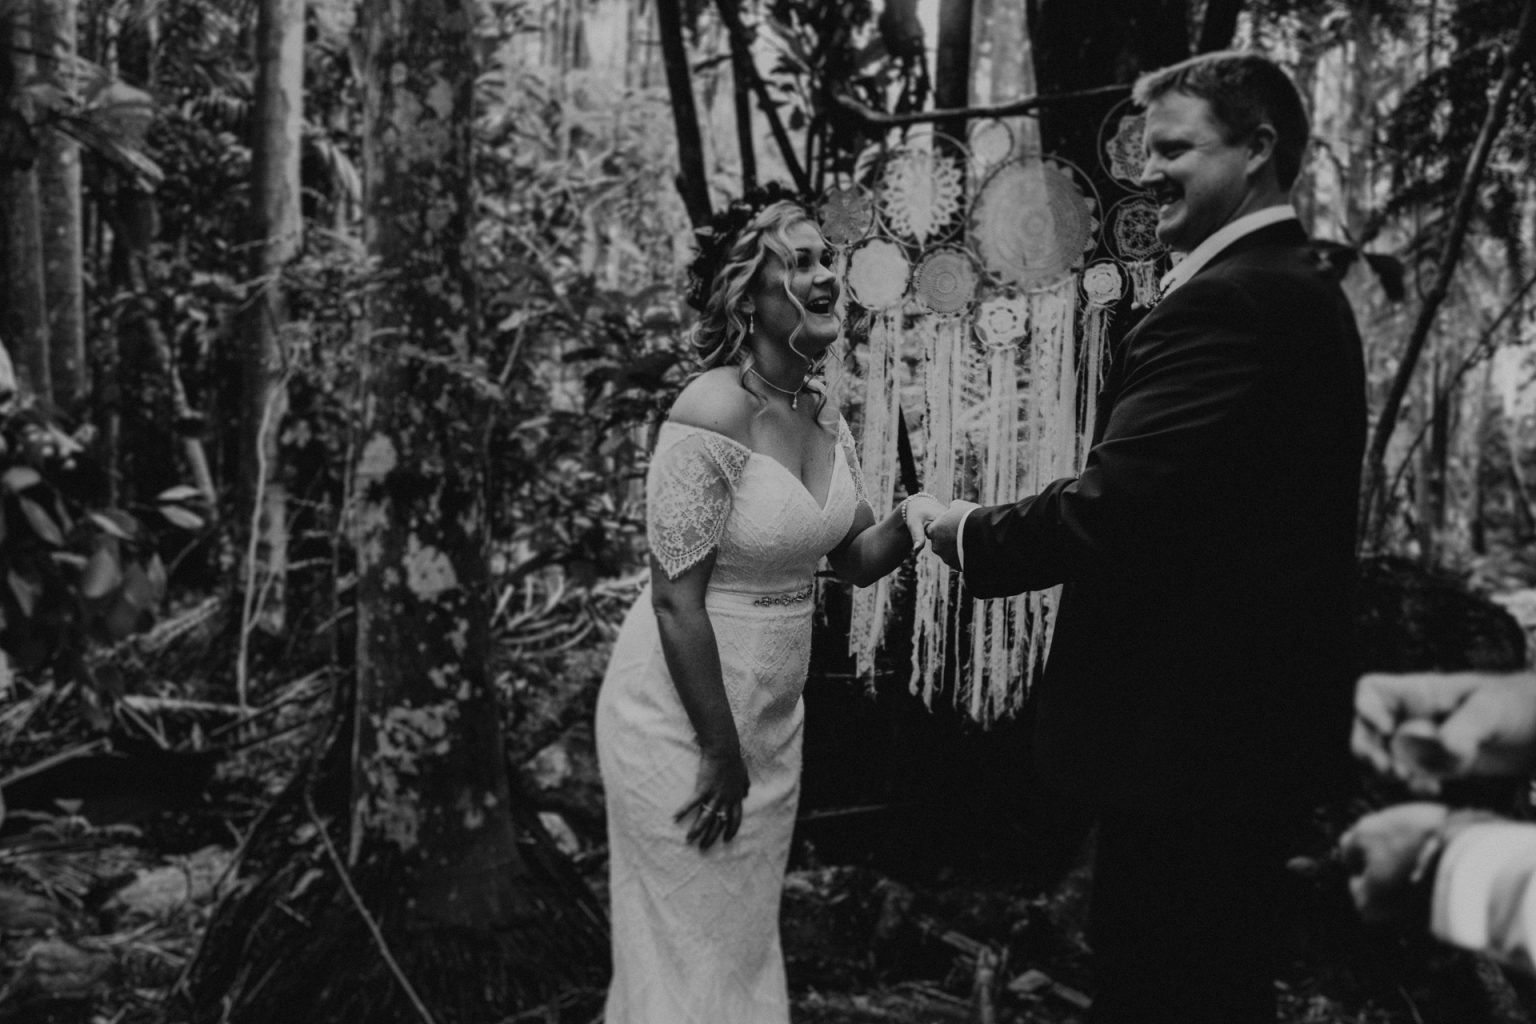 bride and groom at forest alter elopement ceremony